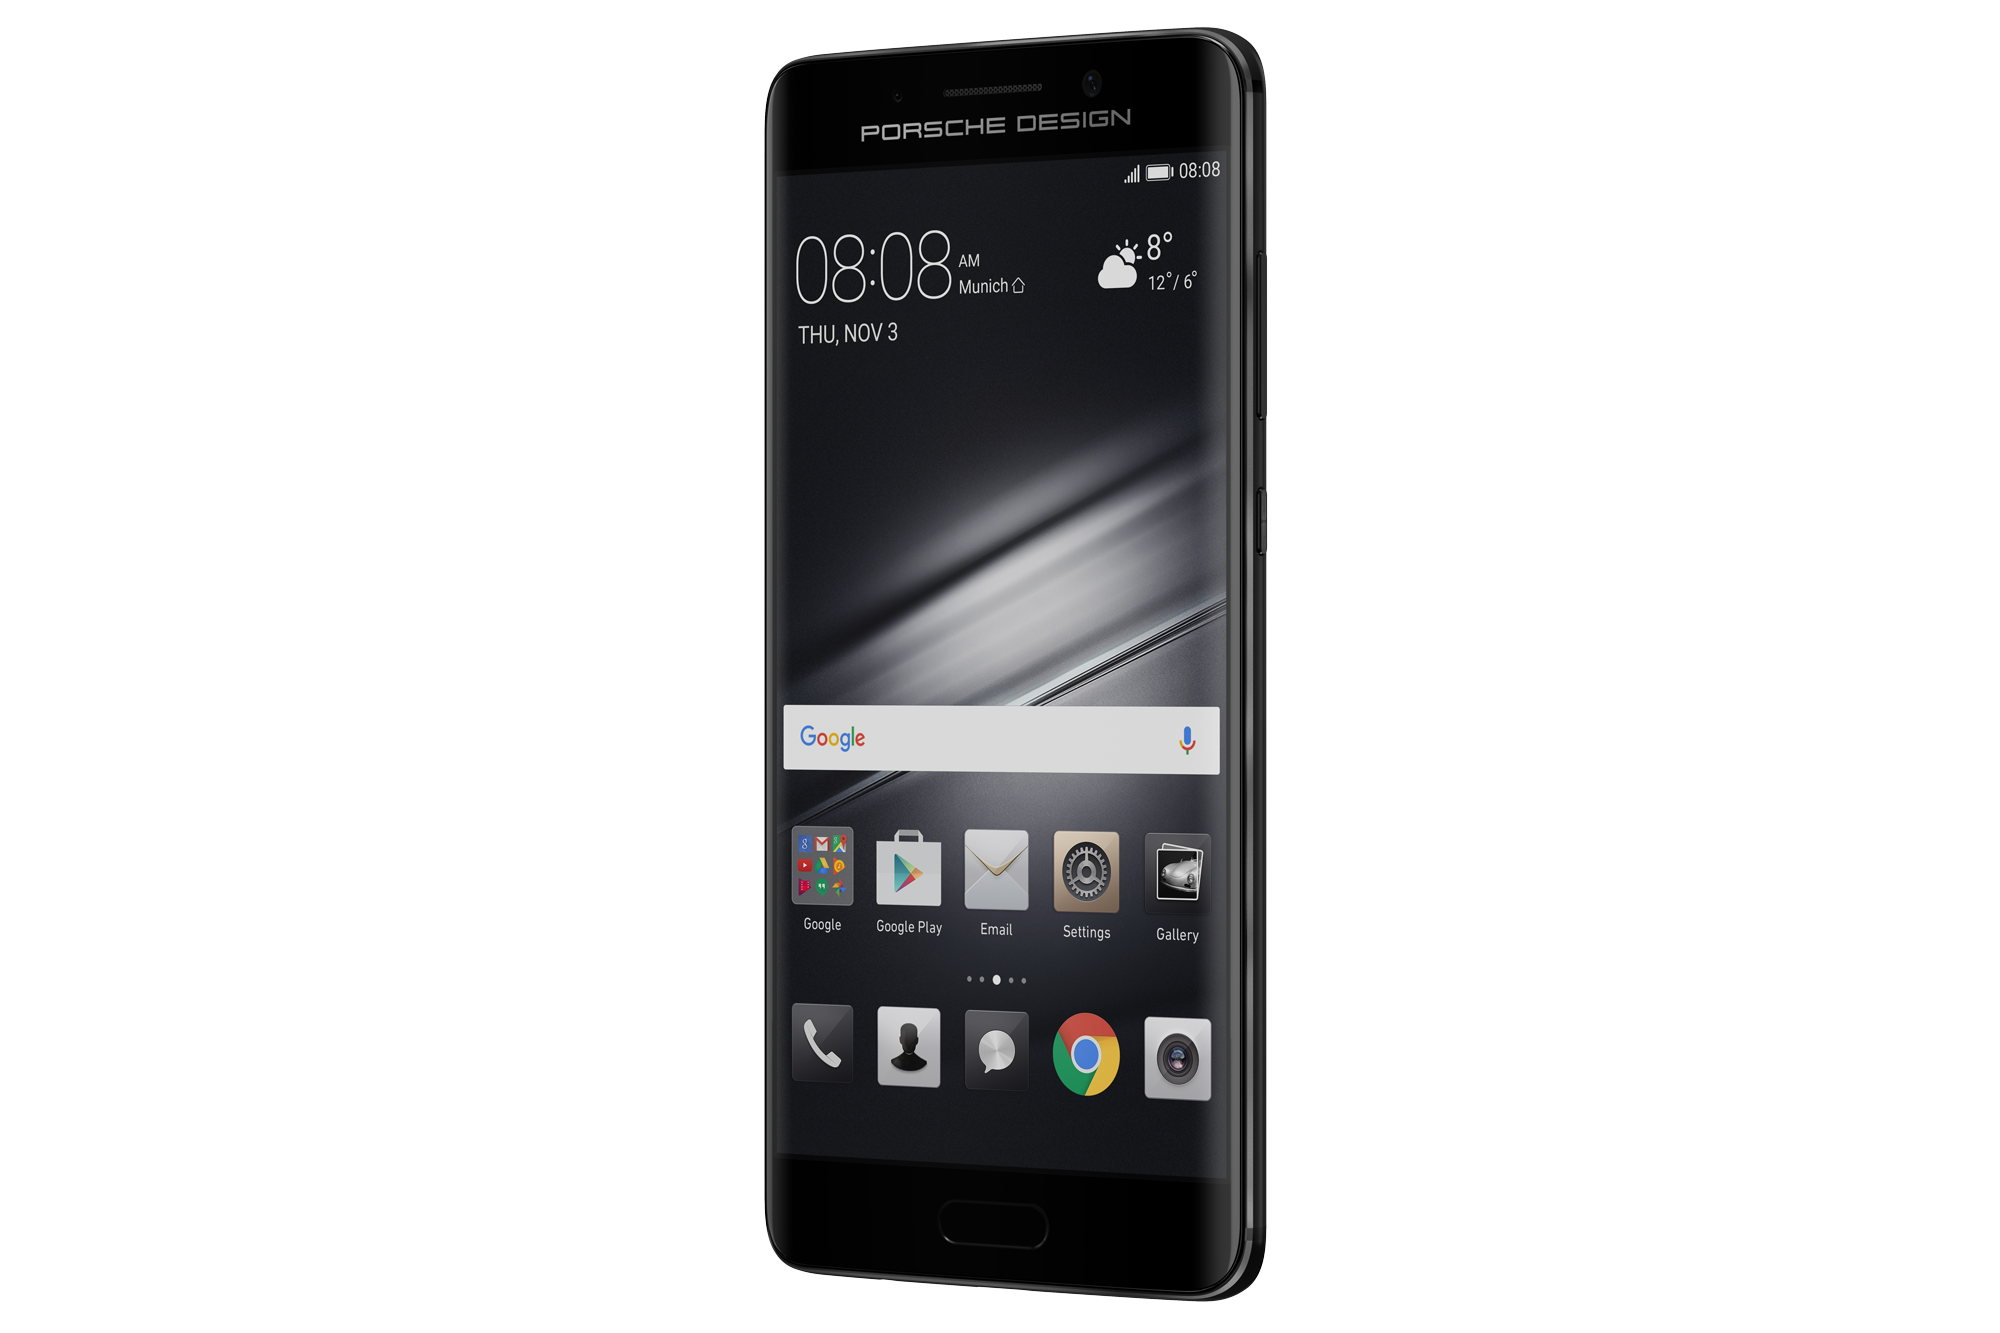 huawei mate 9 porsche design androidbrick. Black Bedroom Furniture Sets. Home Design Ideas